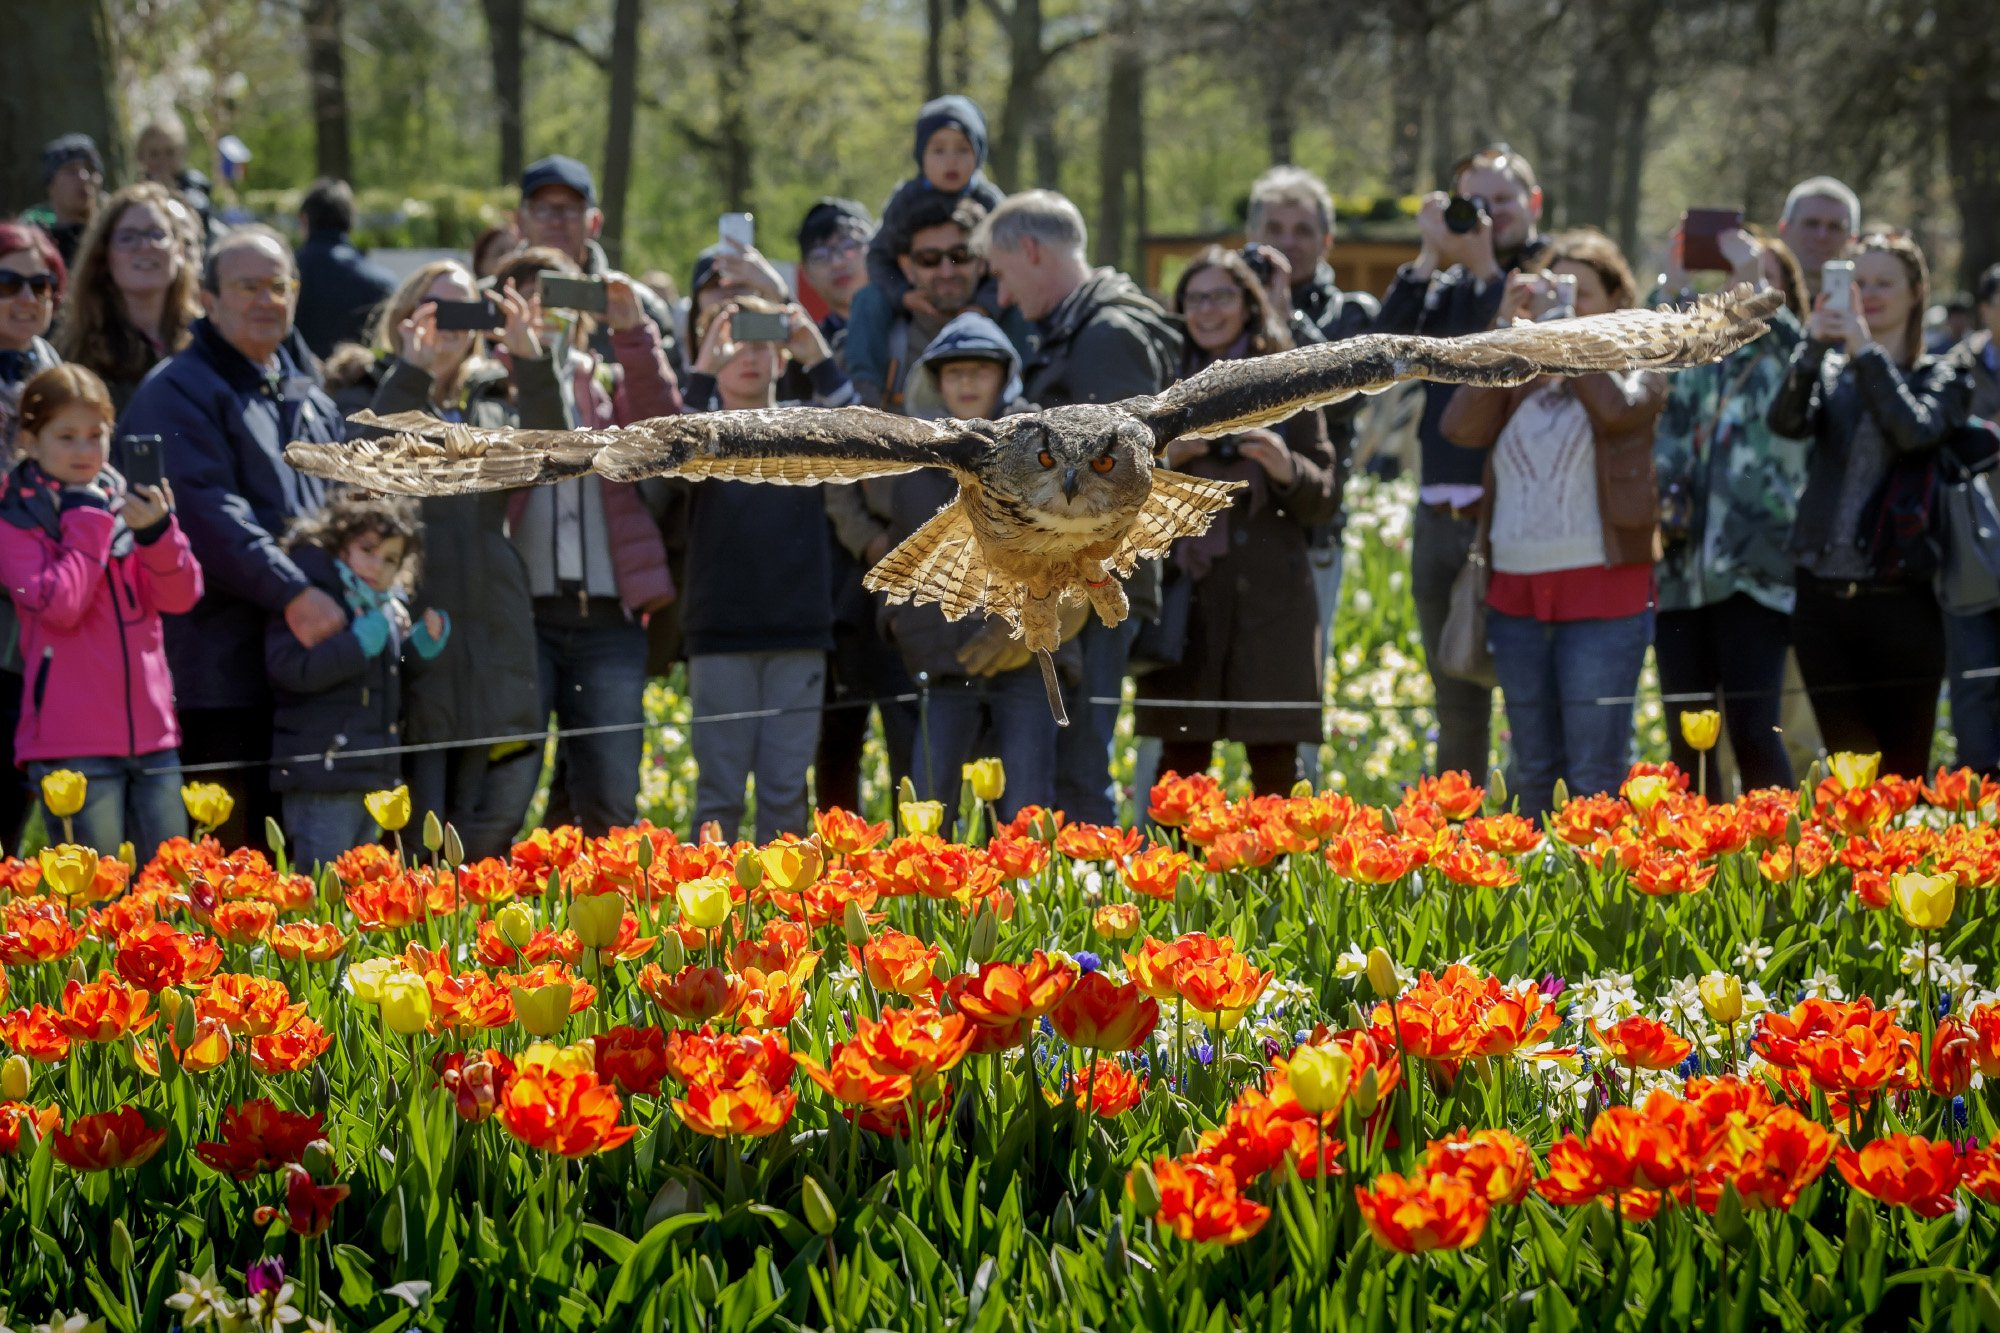 Bird of Prey shows Keukenhof